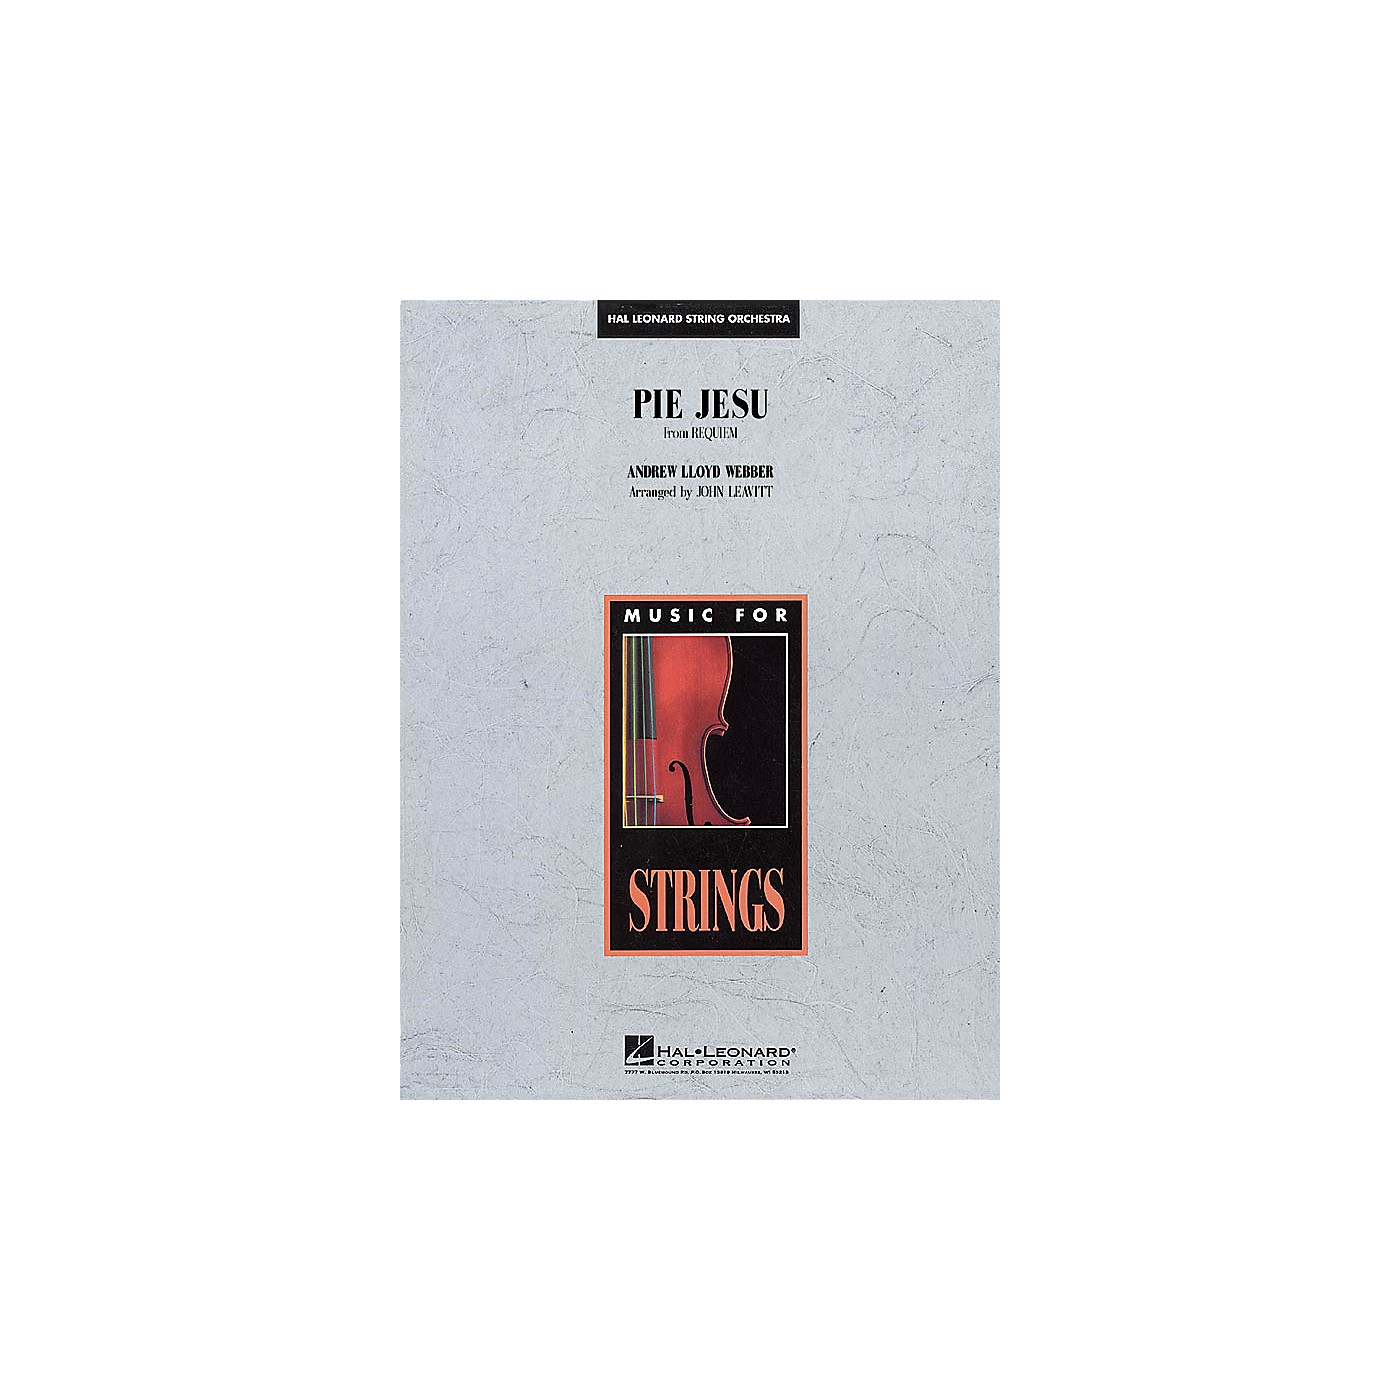 Hal Leonard Pie Jesu (from Requiem) Music for String Orchestra Series Softcover Arranged by John Leavitt thumbnail